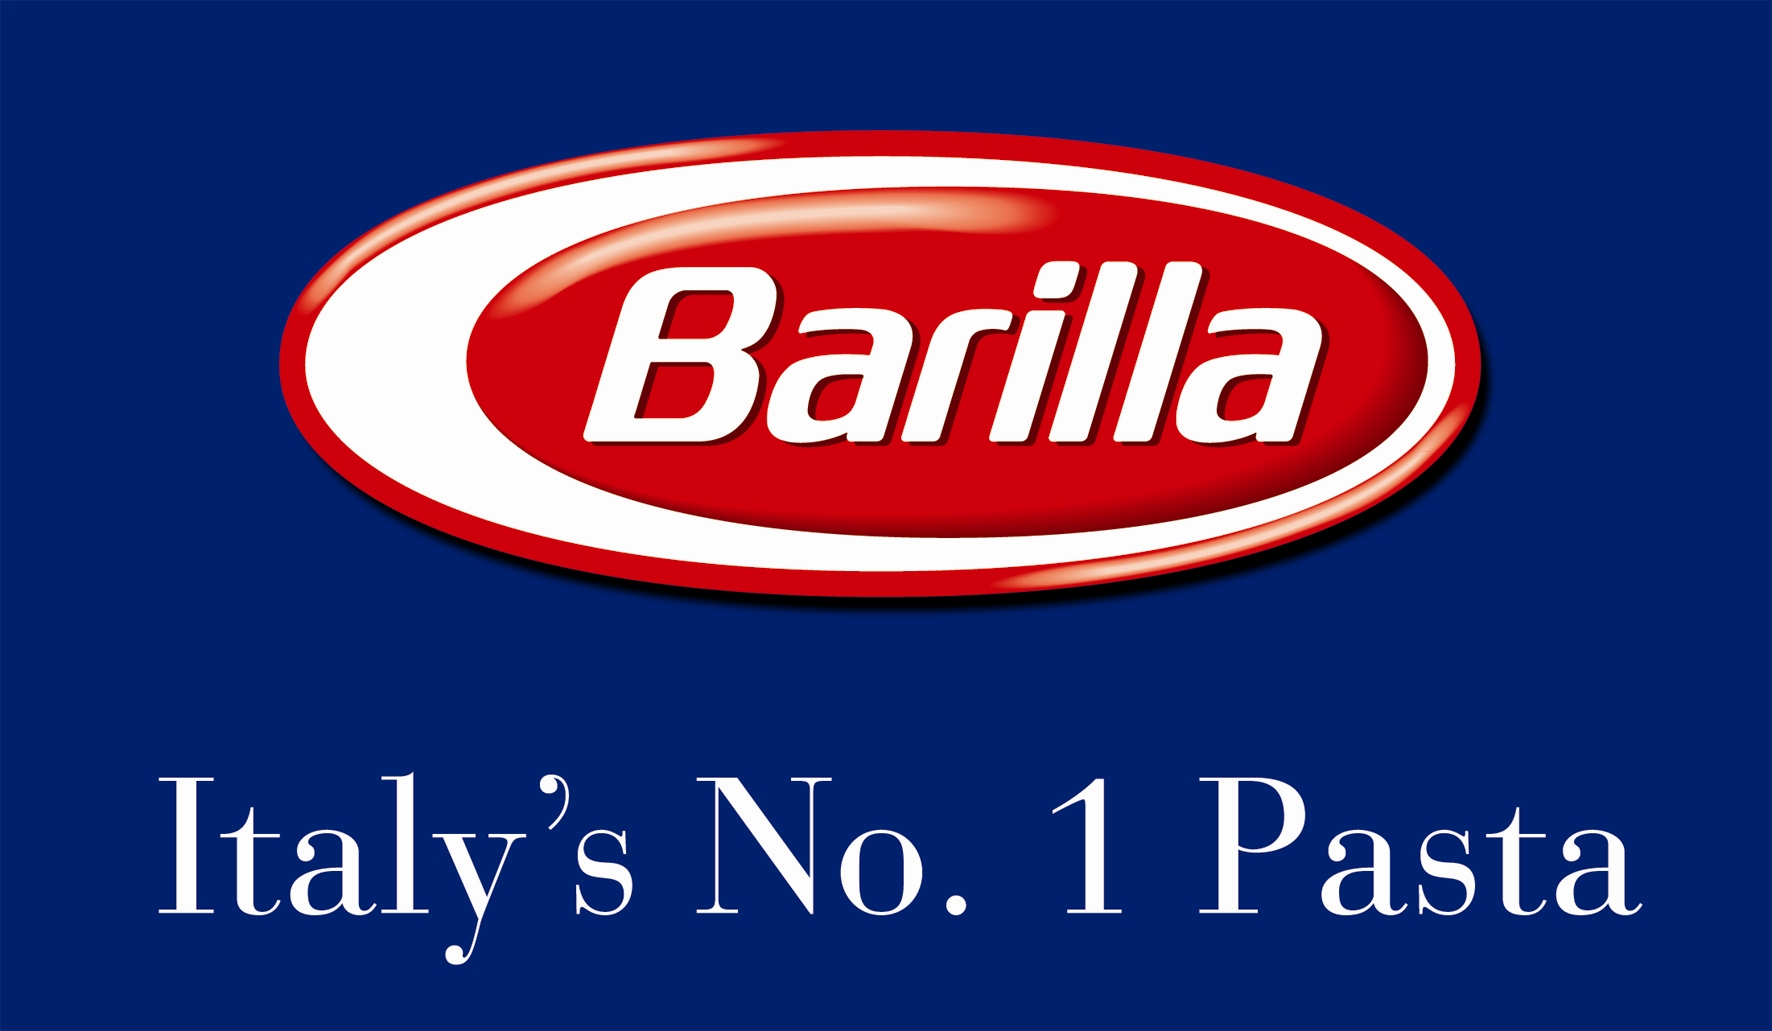 Barilla Responds To Call For Company Boycott After Traditional Family Remarks